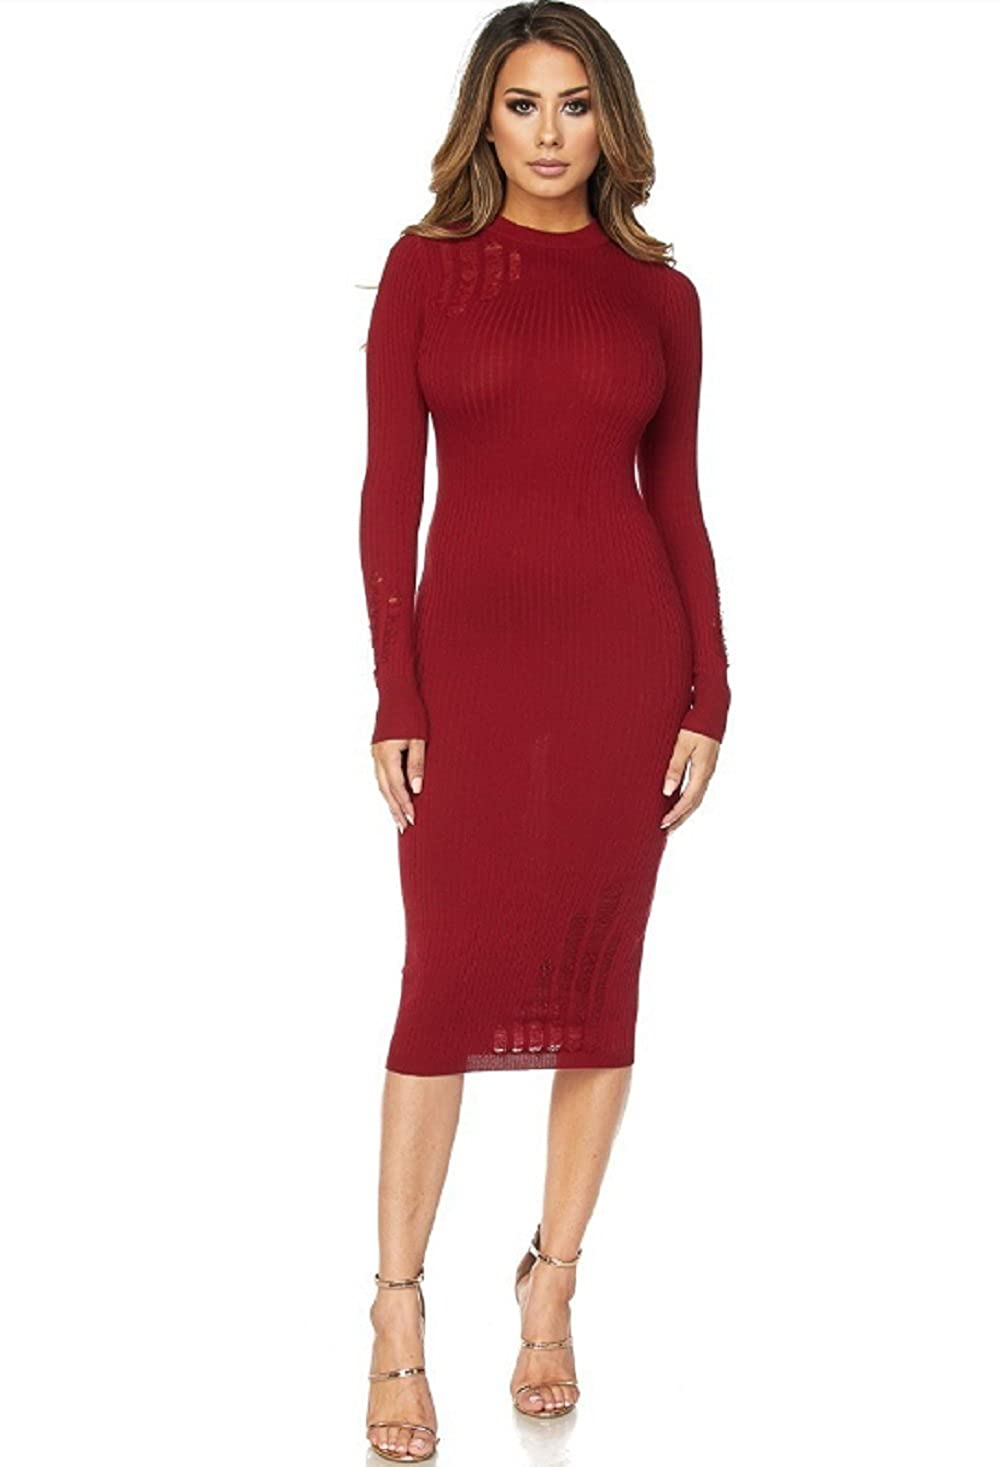 4530bad4463 Ribbed Distressed Sweater Dress at Amazon Women s Clothing store